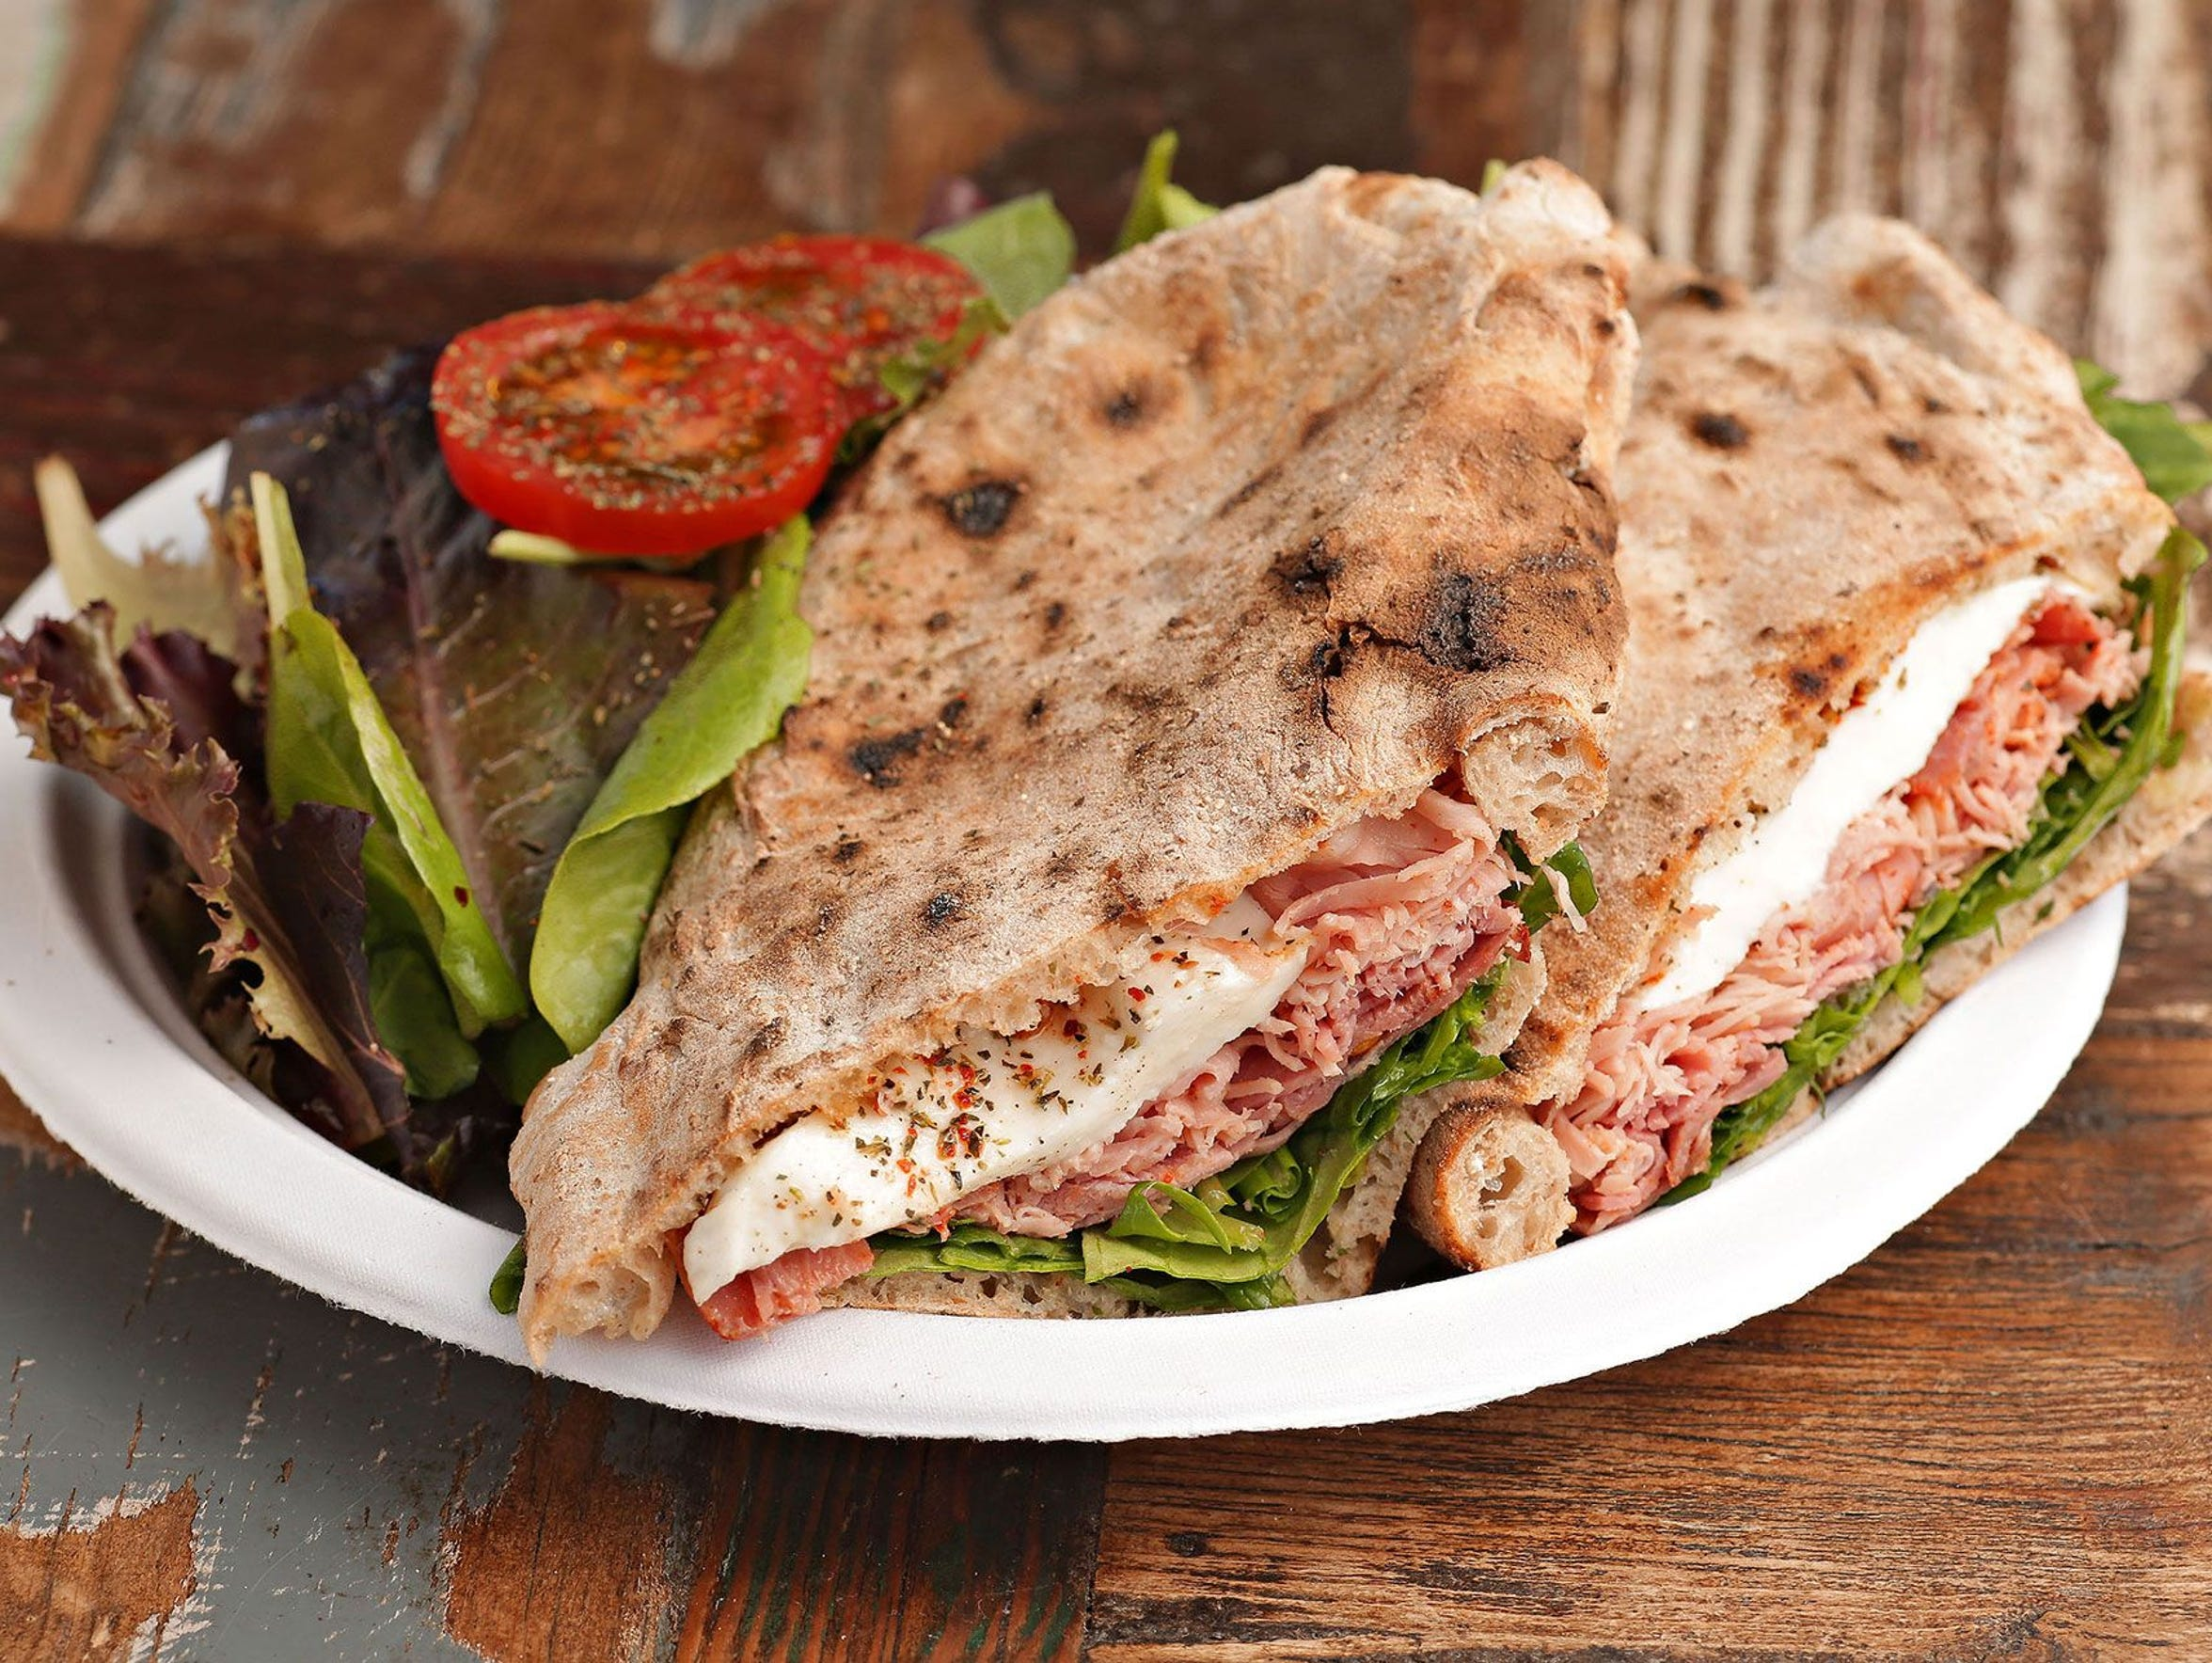 For a quick bite at lunchtime, Noble Eatery's simple sandwiches, vegetables and pizzas are beautifully crafted and built to satisfy and carry you through the day.